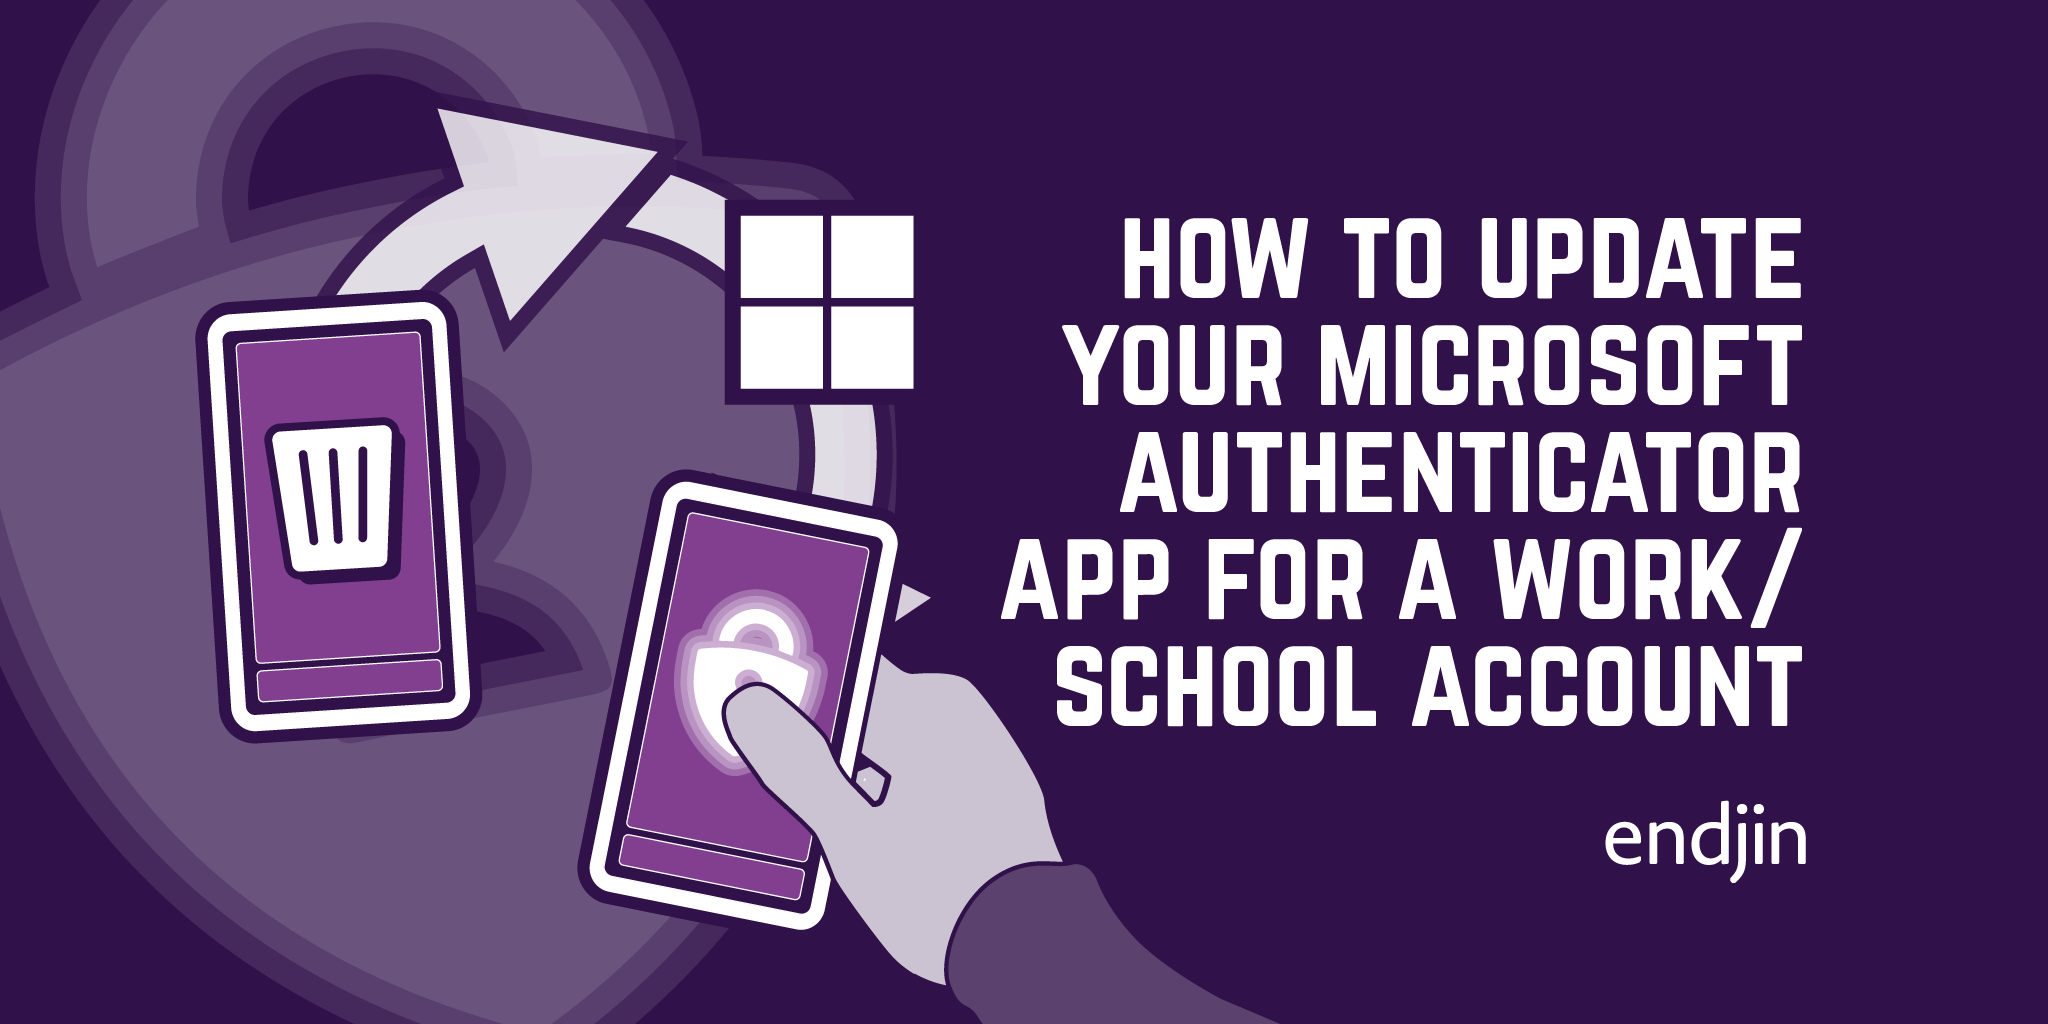 How to update your Microsoft Authenticator App for a work/school account